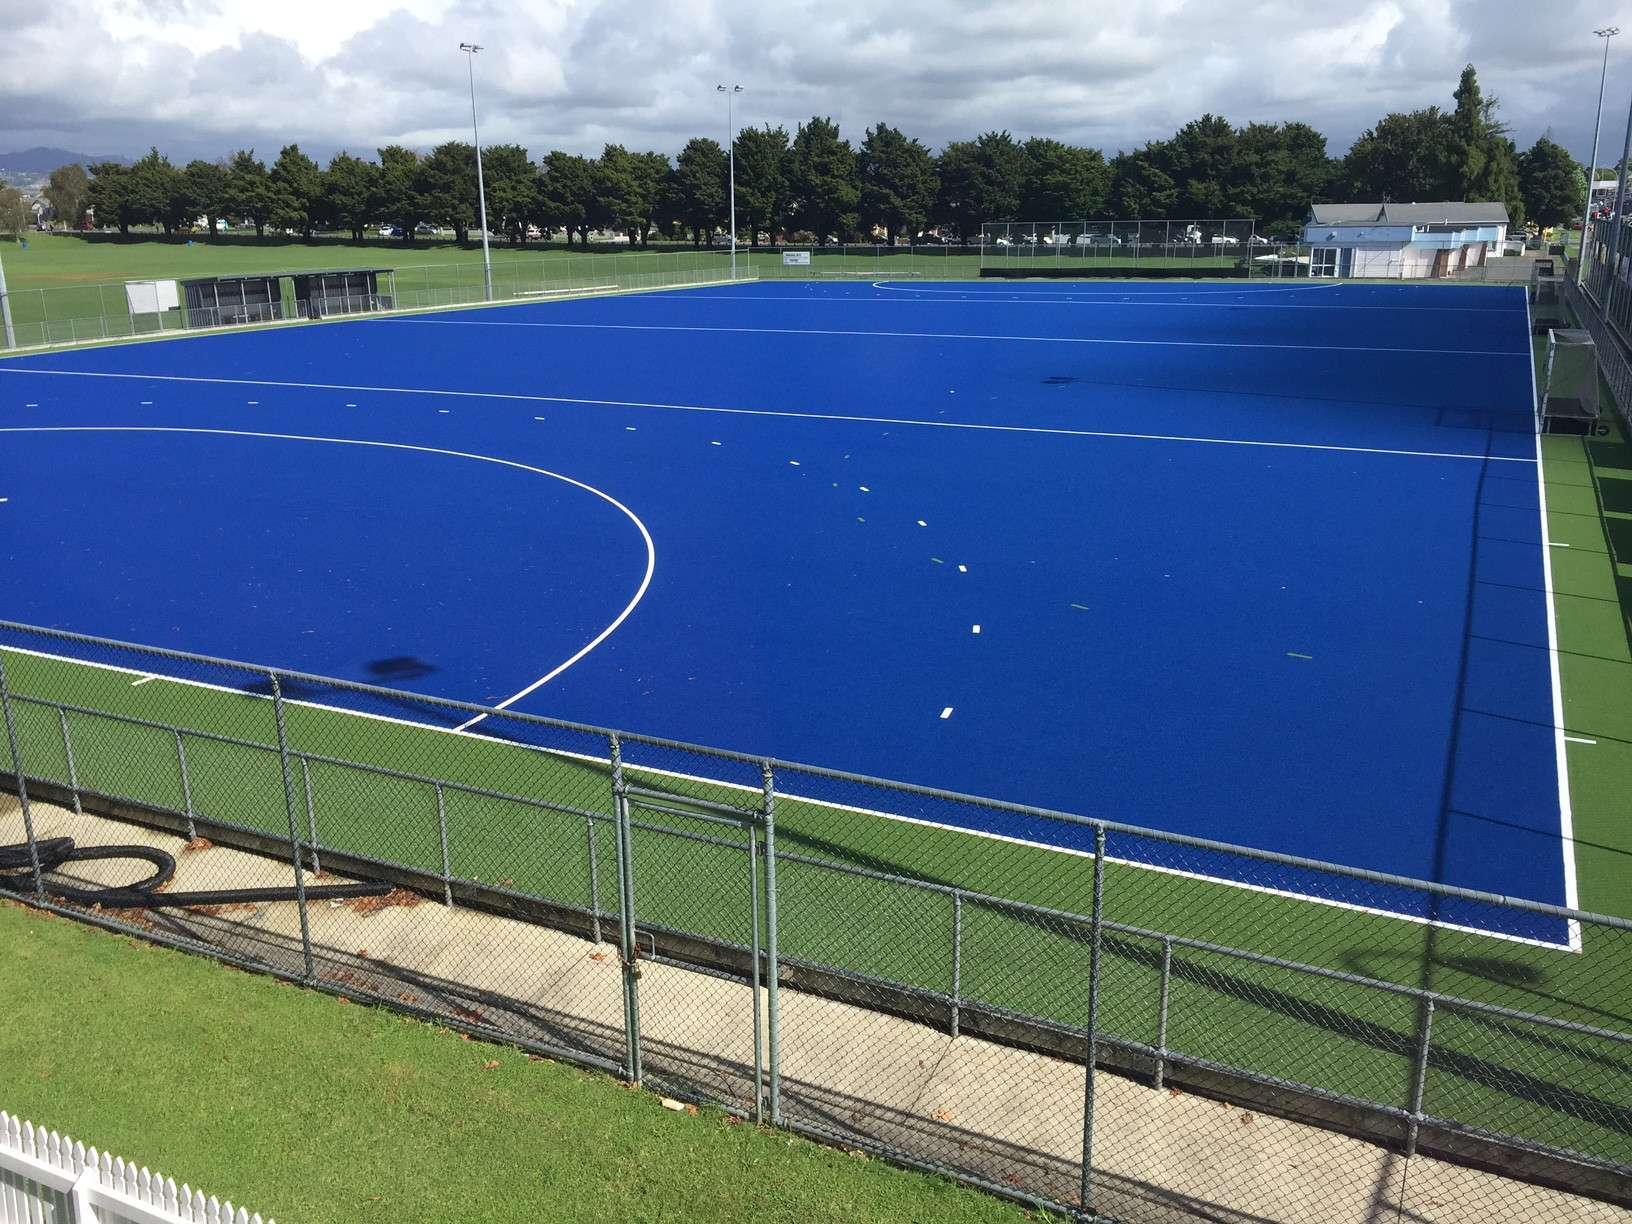 All Weather Turf - Facilities - Our Facilities - About Us  -  Tauranga Boys' College